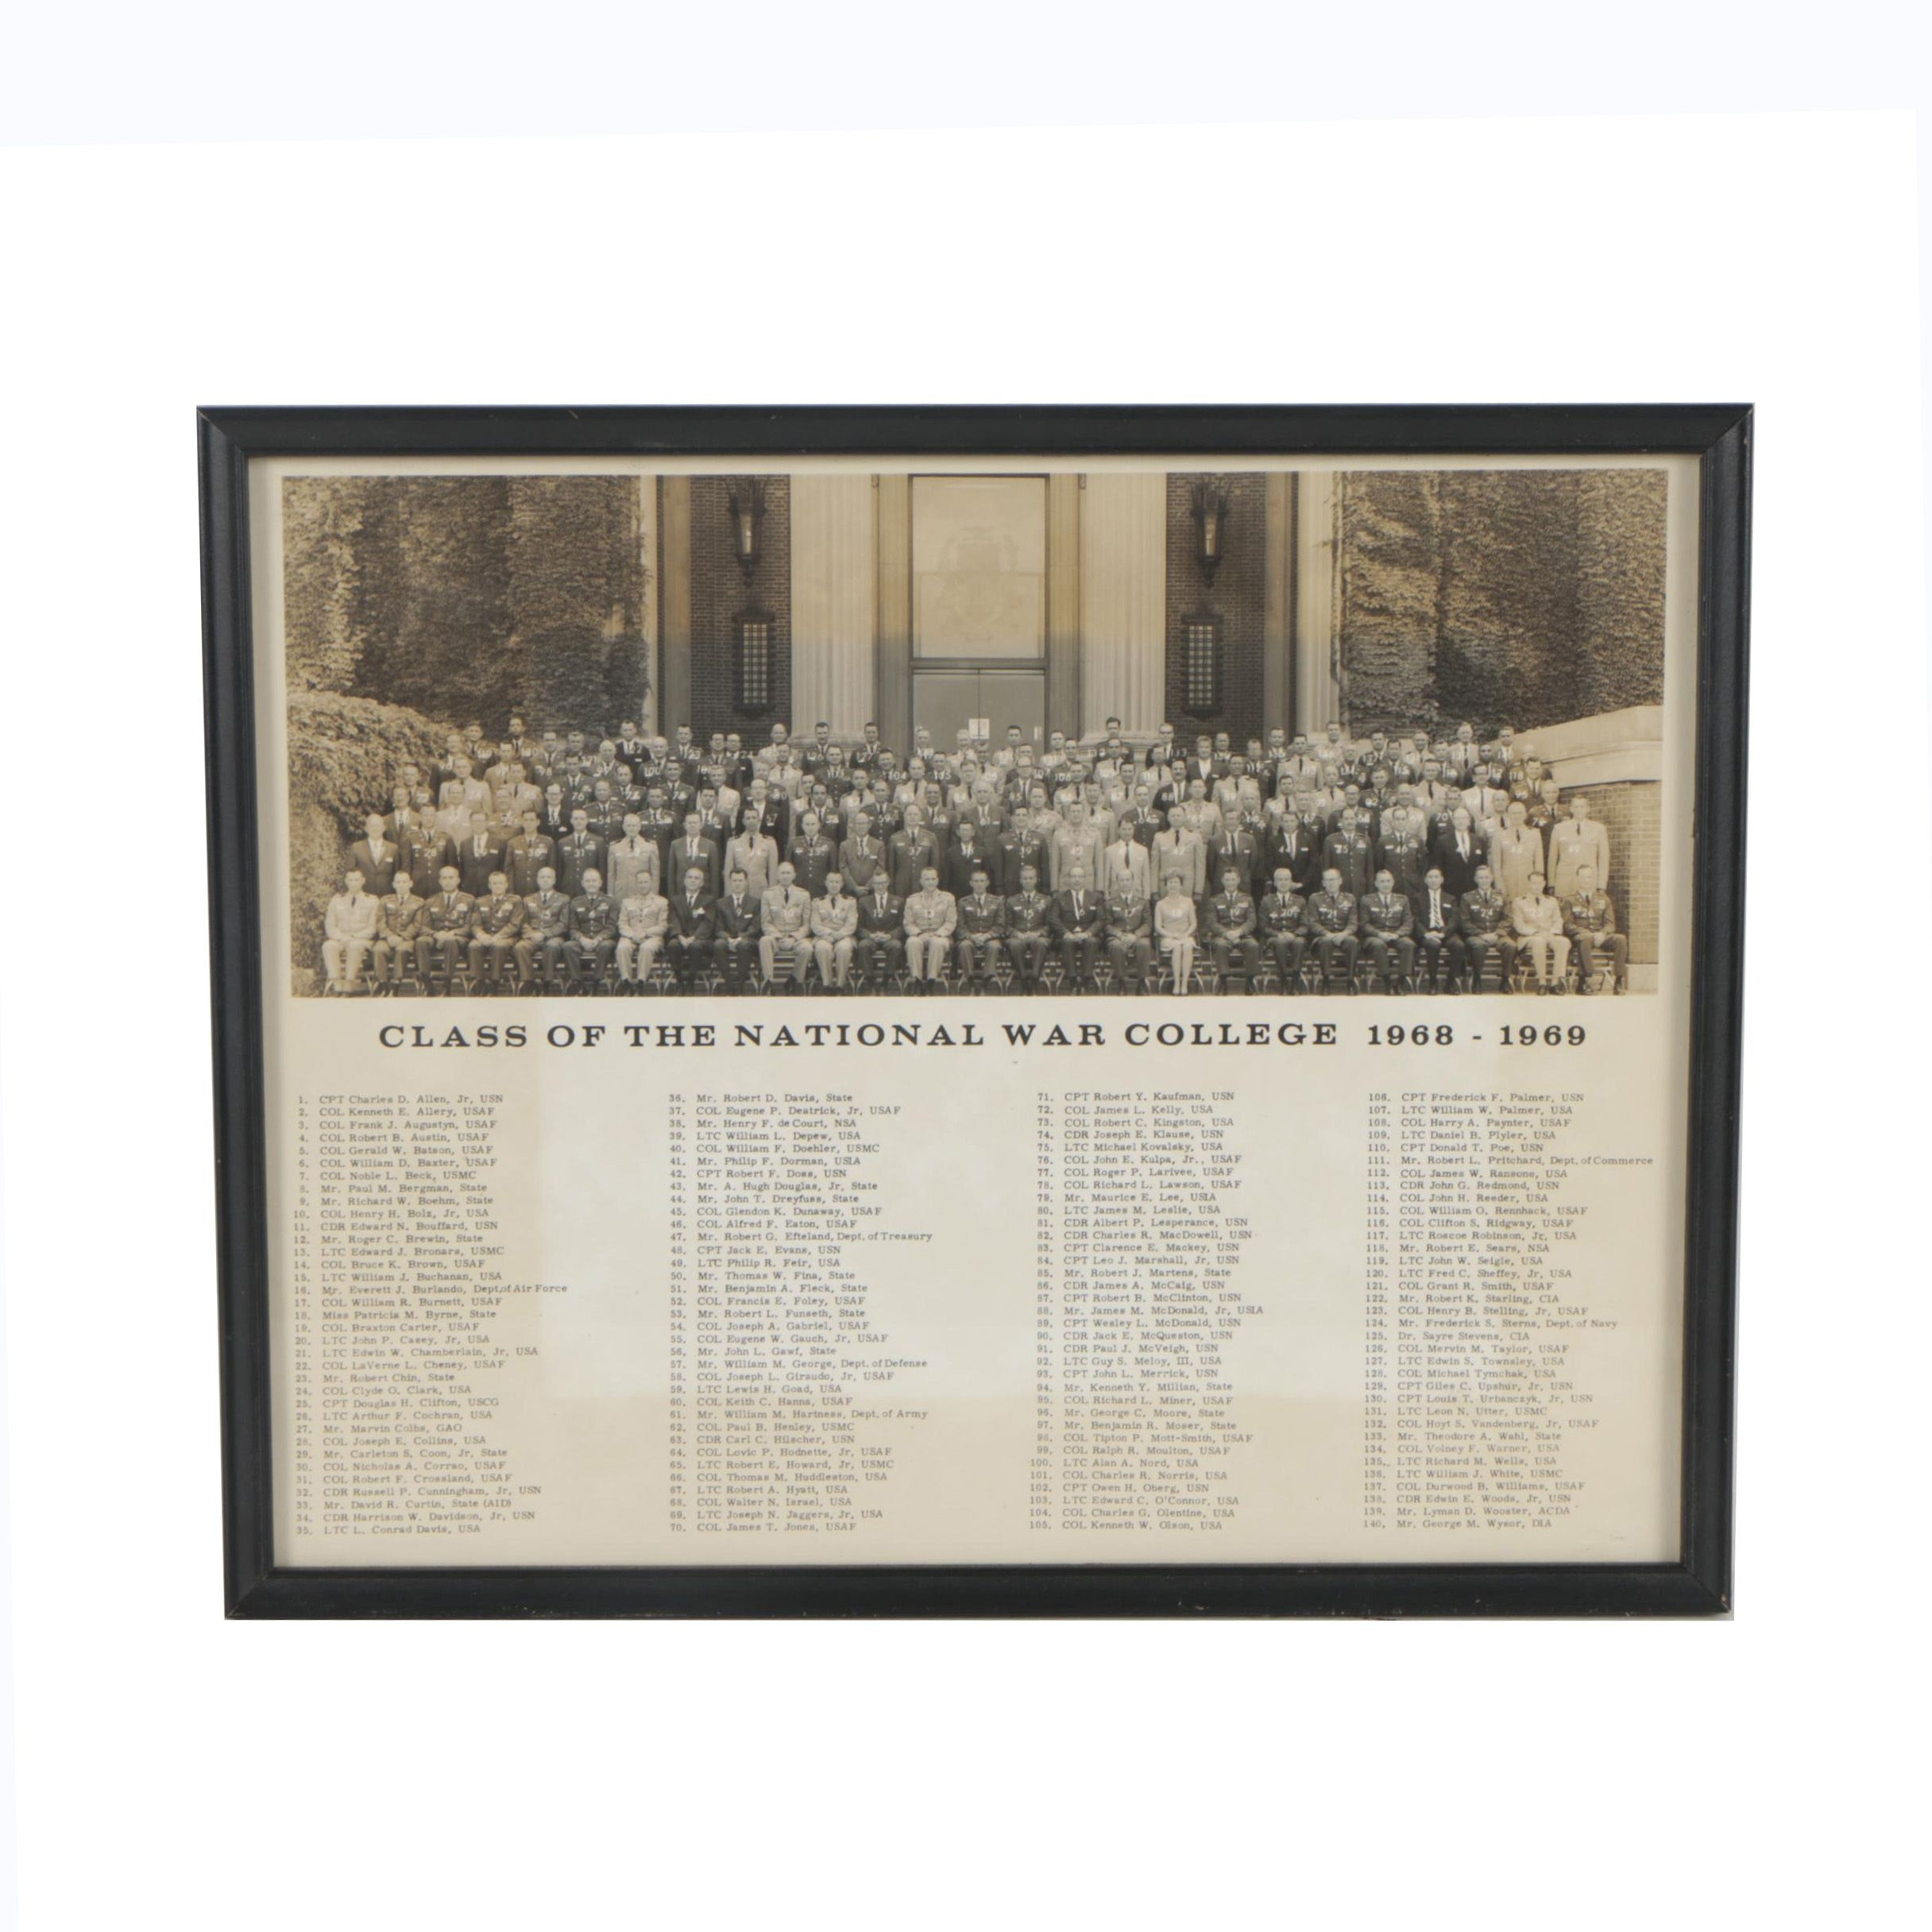 National War College Class of 1968-1969 Black and White Photograph